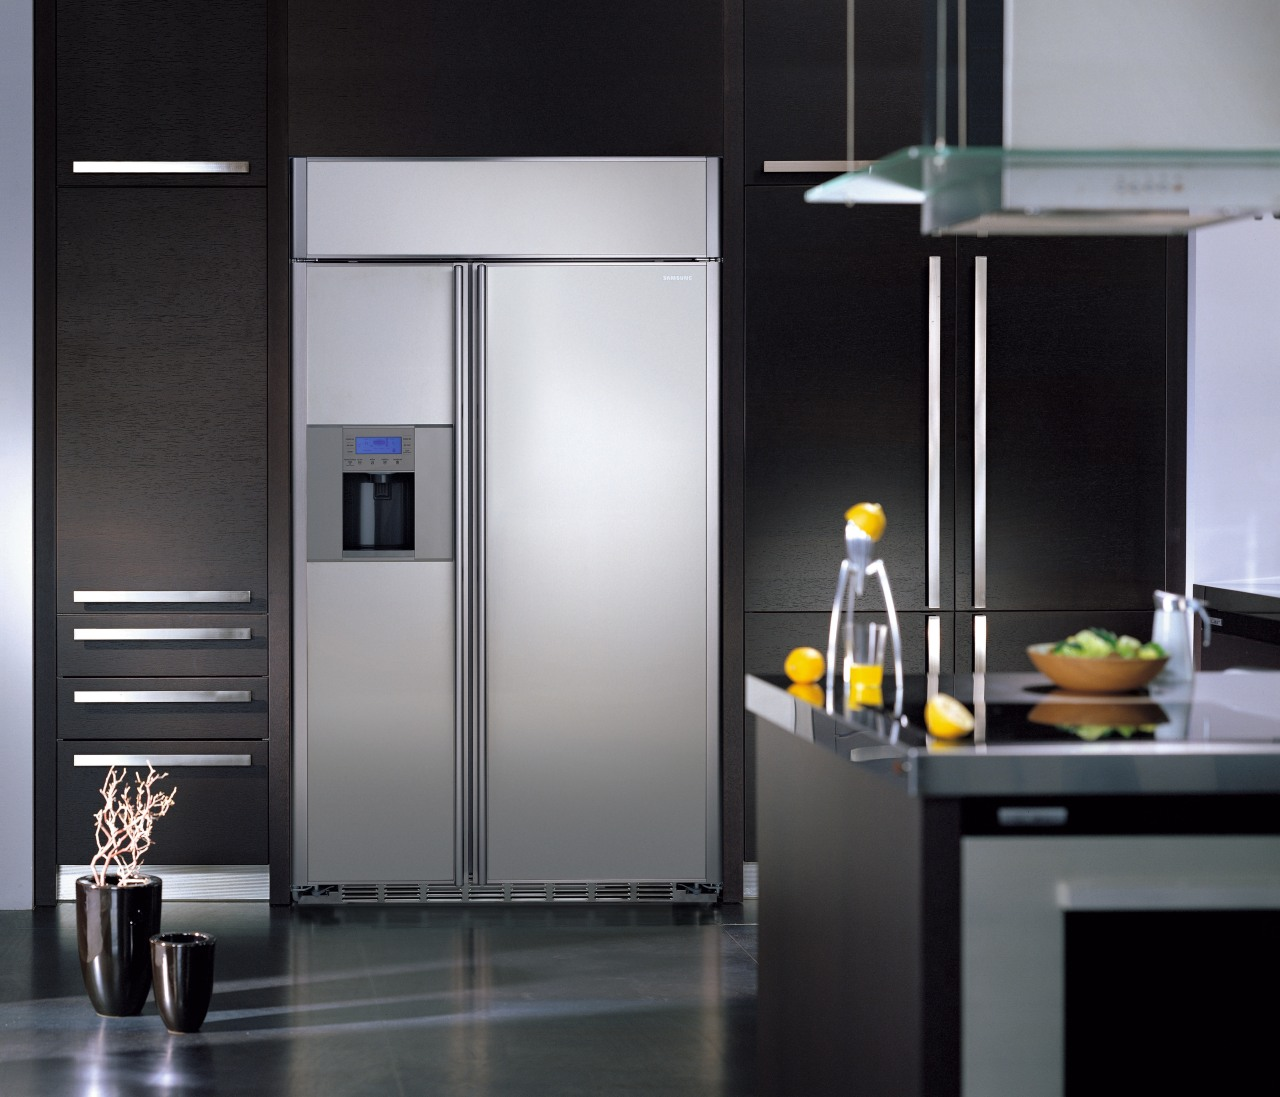 Large stainless steel side by side refrigerator set home appliance, interior design, kitchen, kitchen appliance, major appliance, product design, refrigerator, black, gray